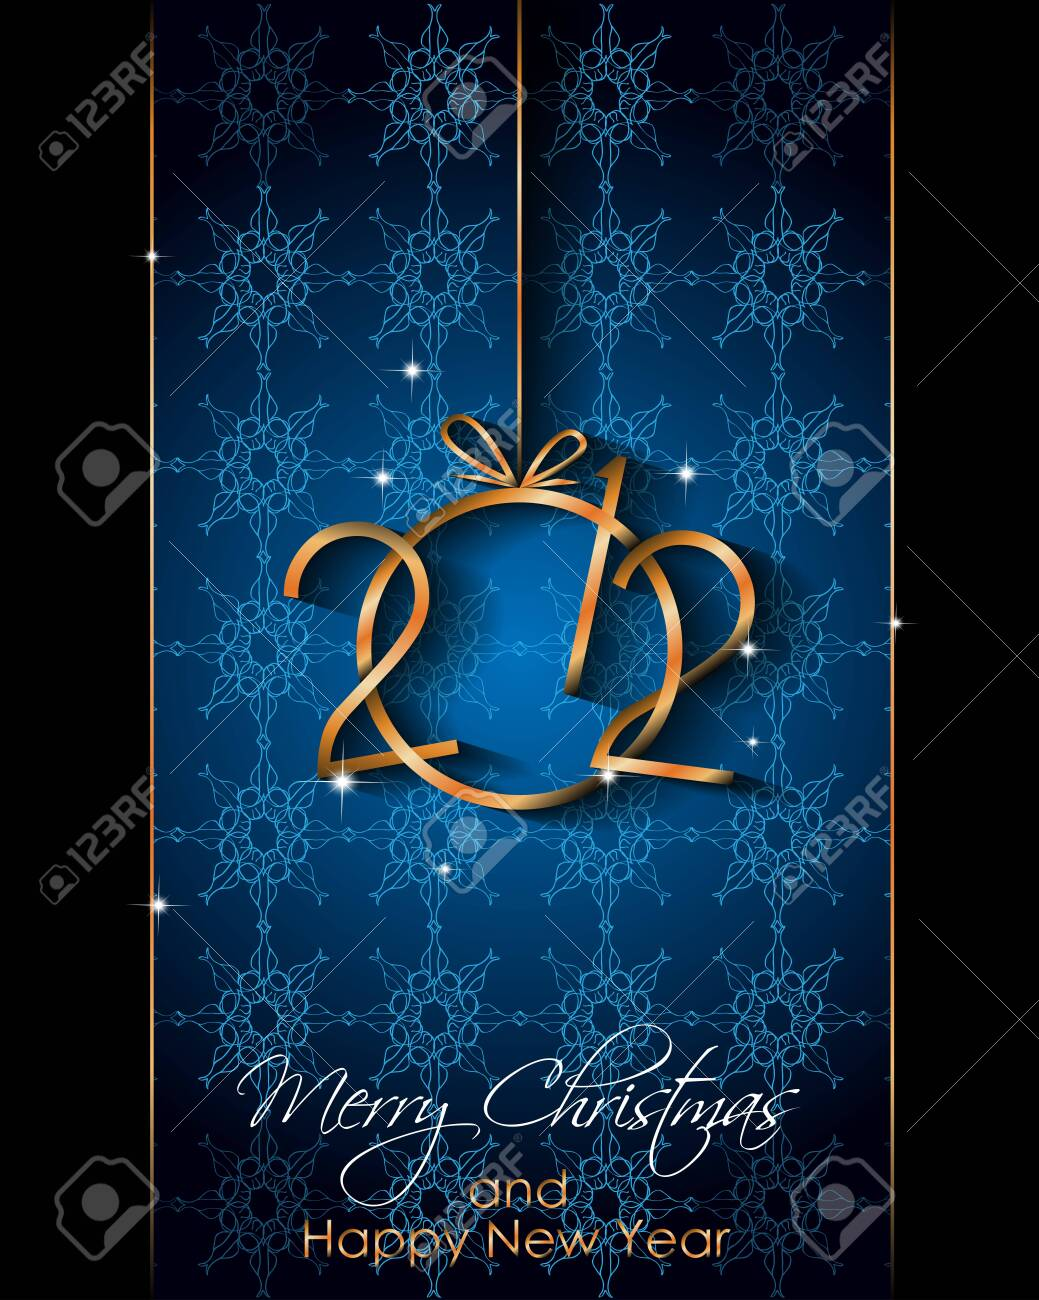 2021 Happy New Year background for your seasonal invitations, festive posters, greetings cards. - 154042667